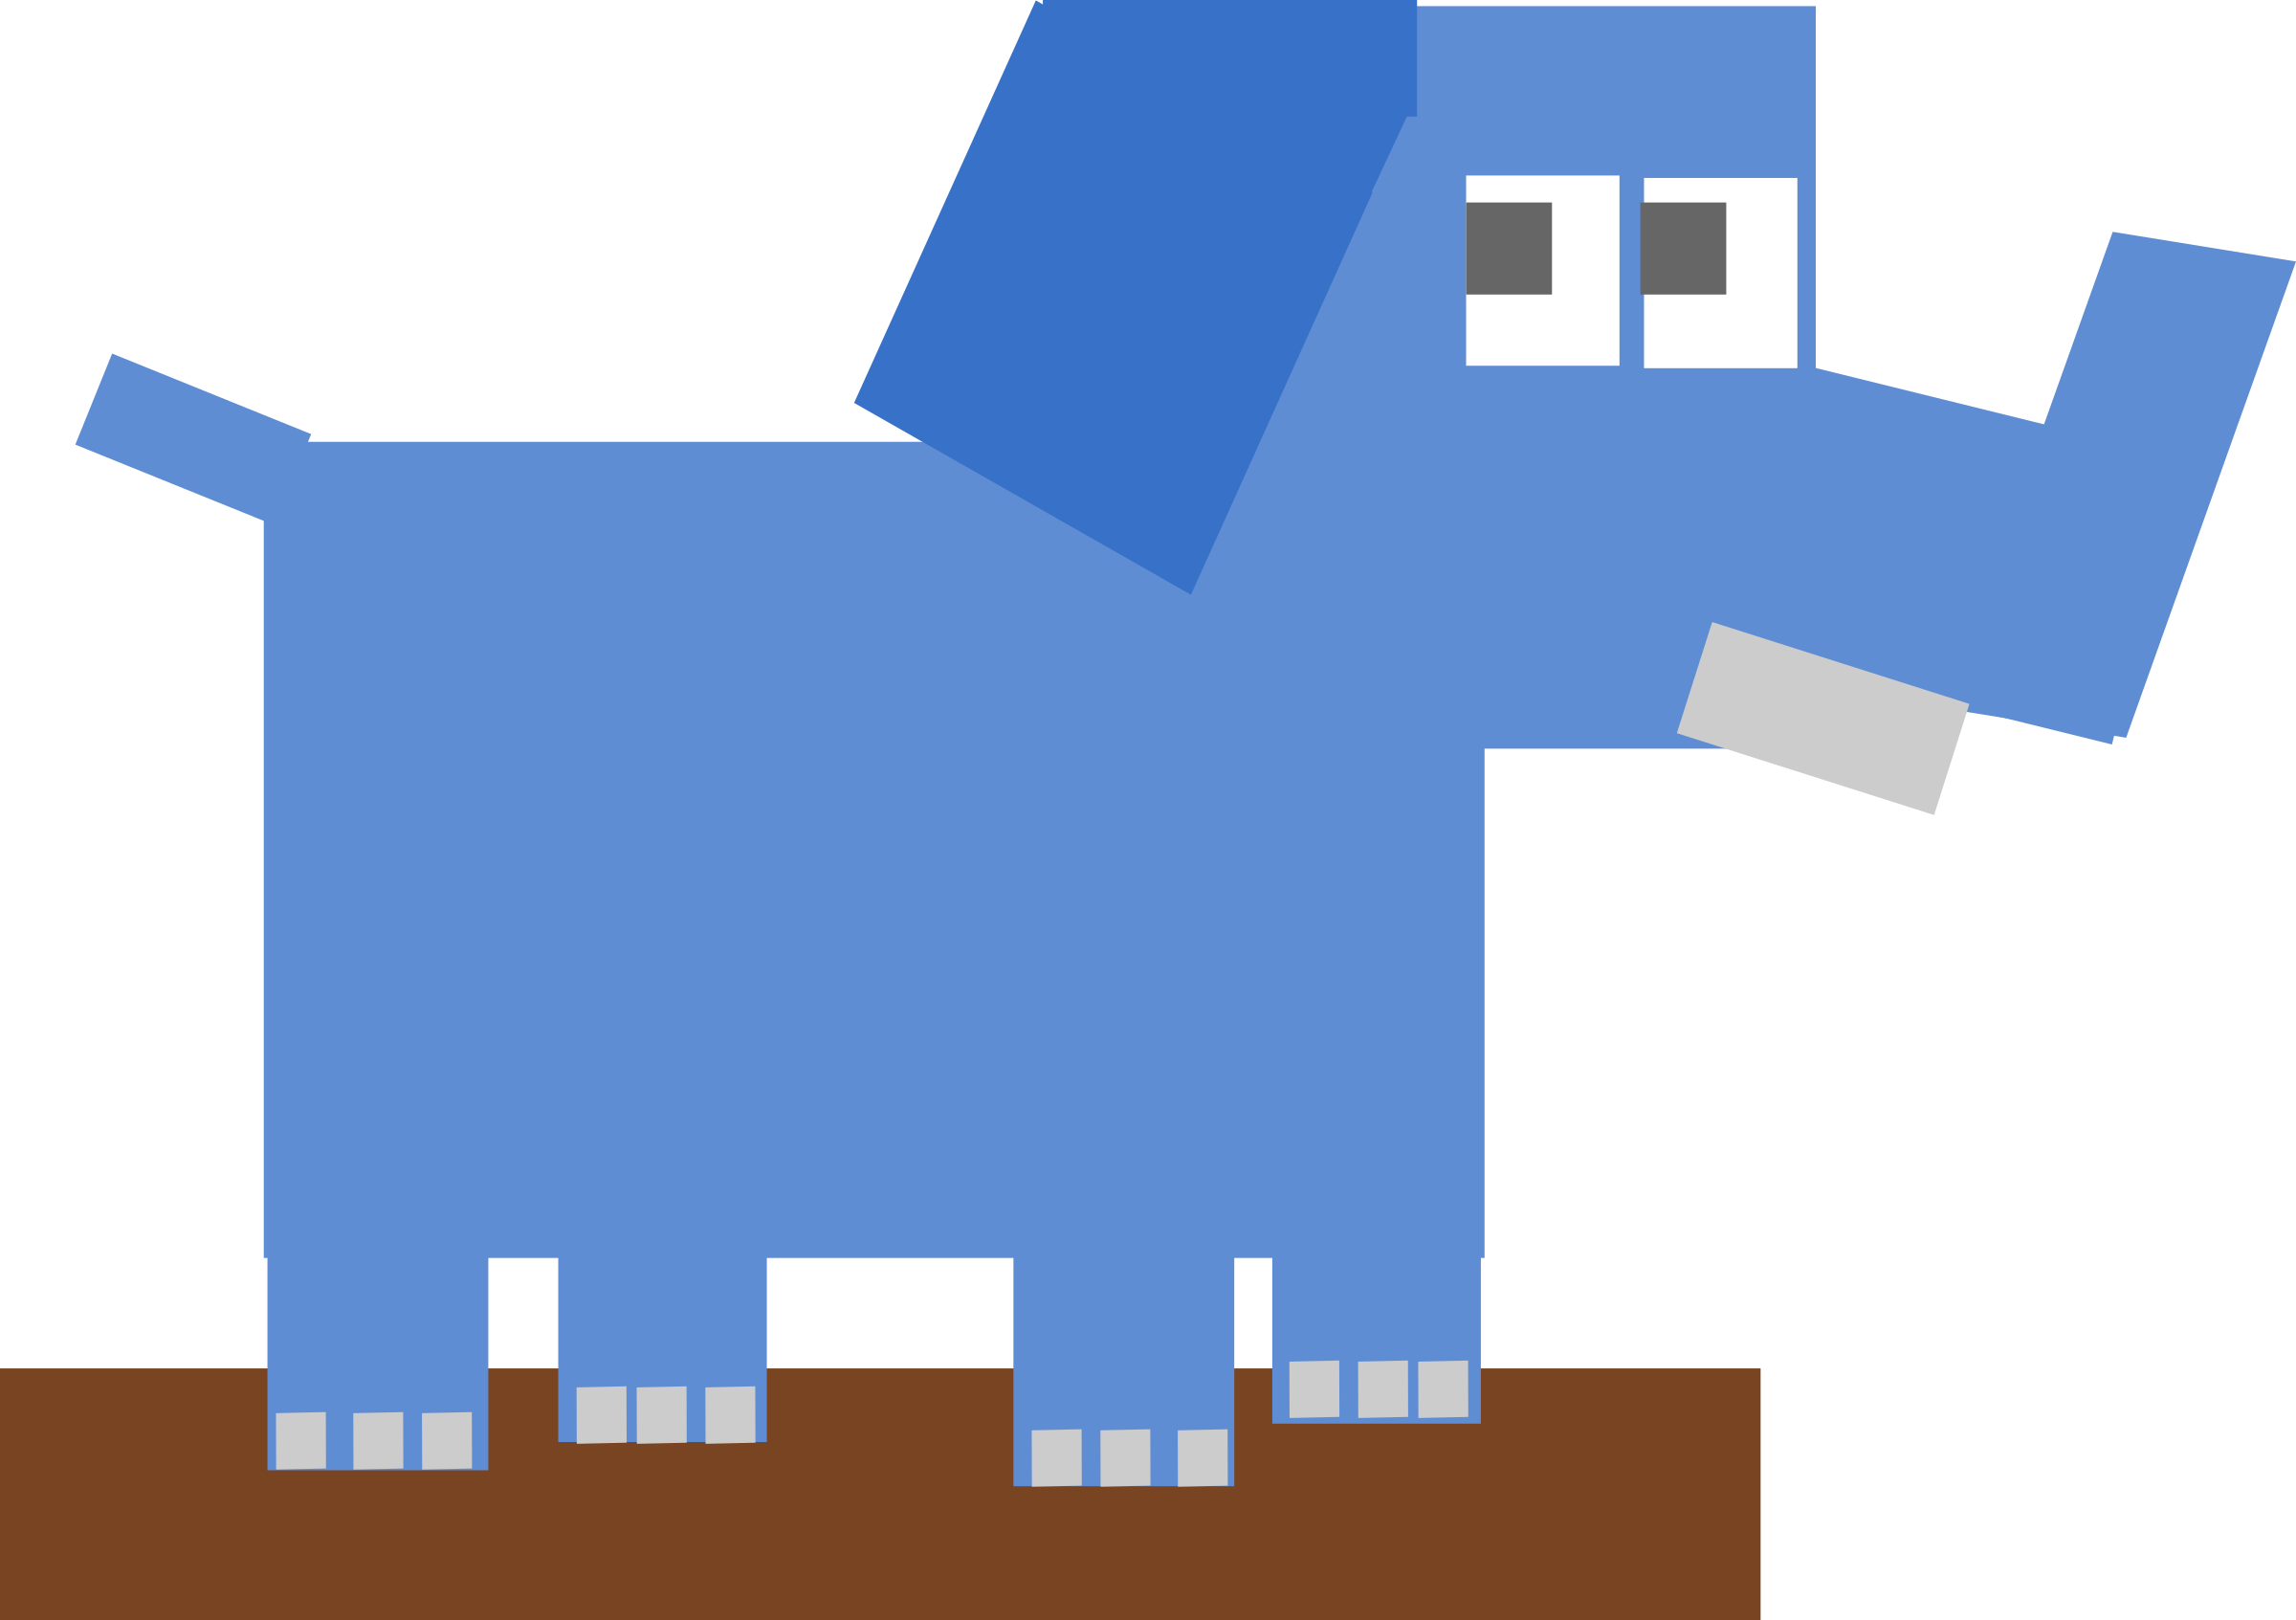 Square animal cartoon elephant by Dog99x